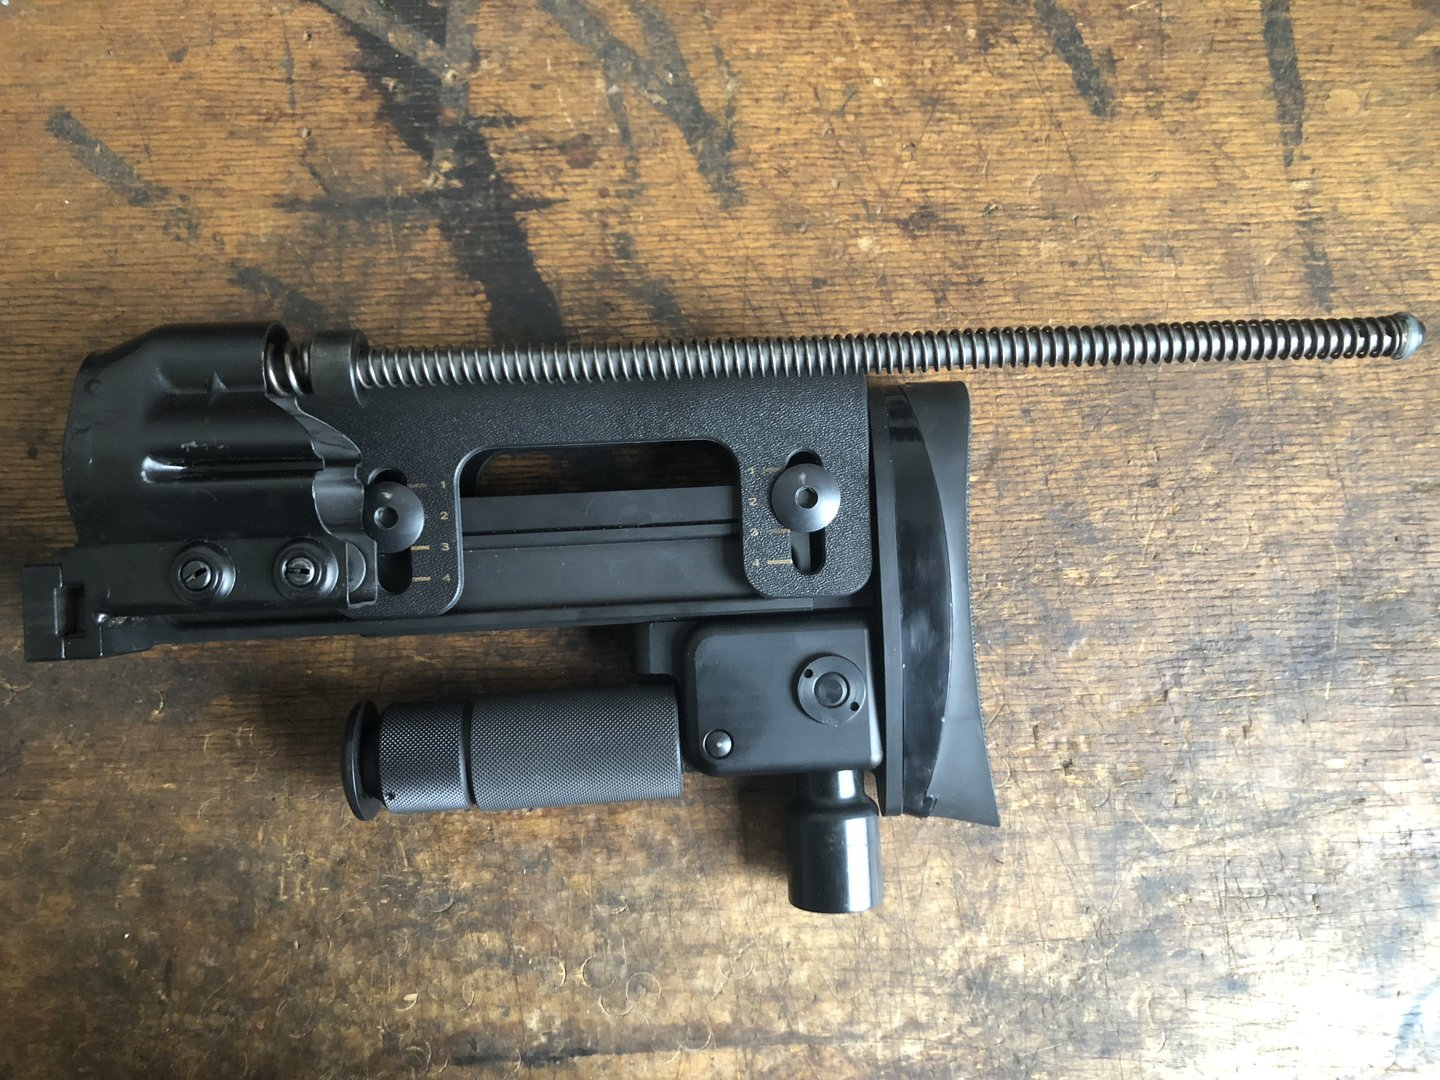 H K Psg1 G3 Butt Stock Sniper Rifle Mint Condition Version 2